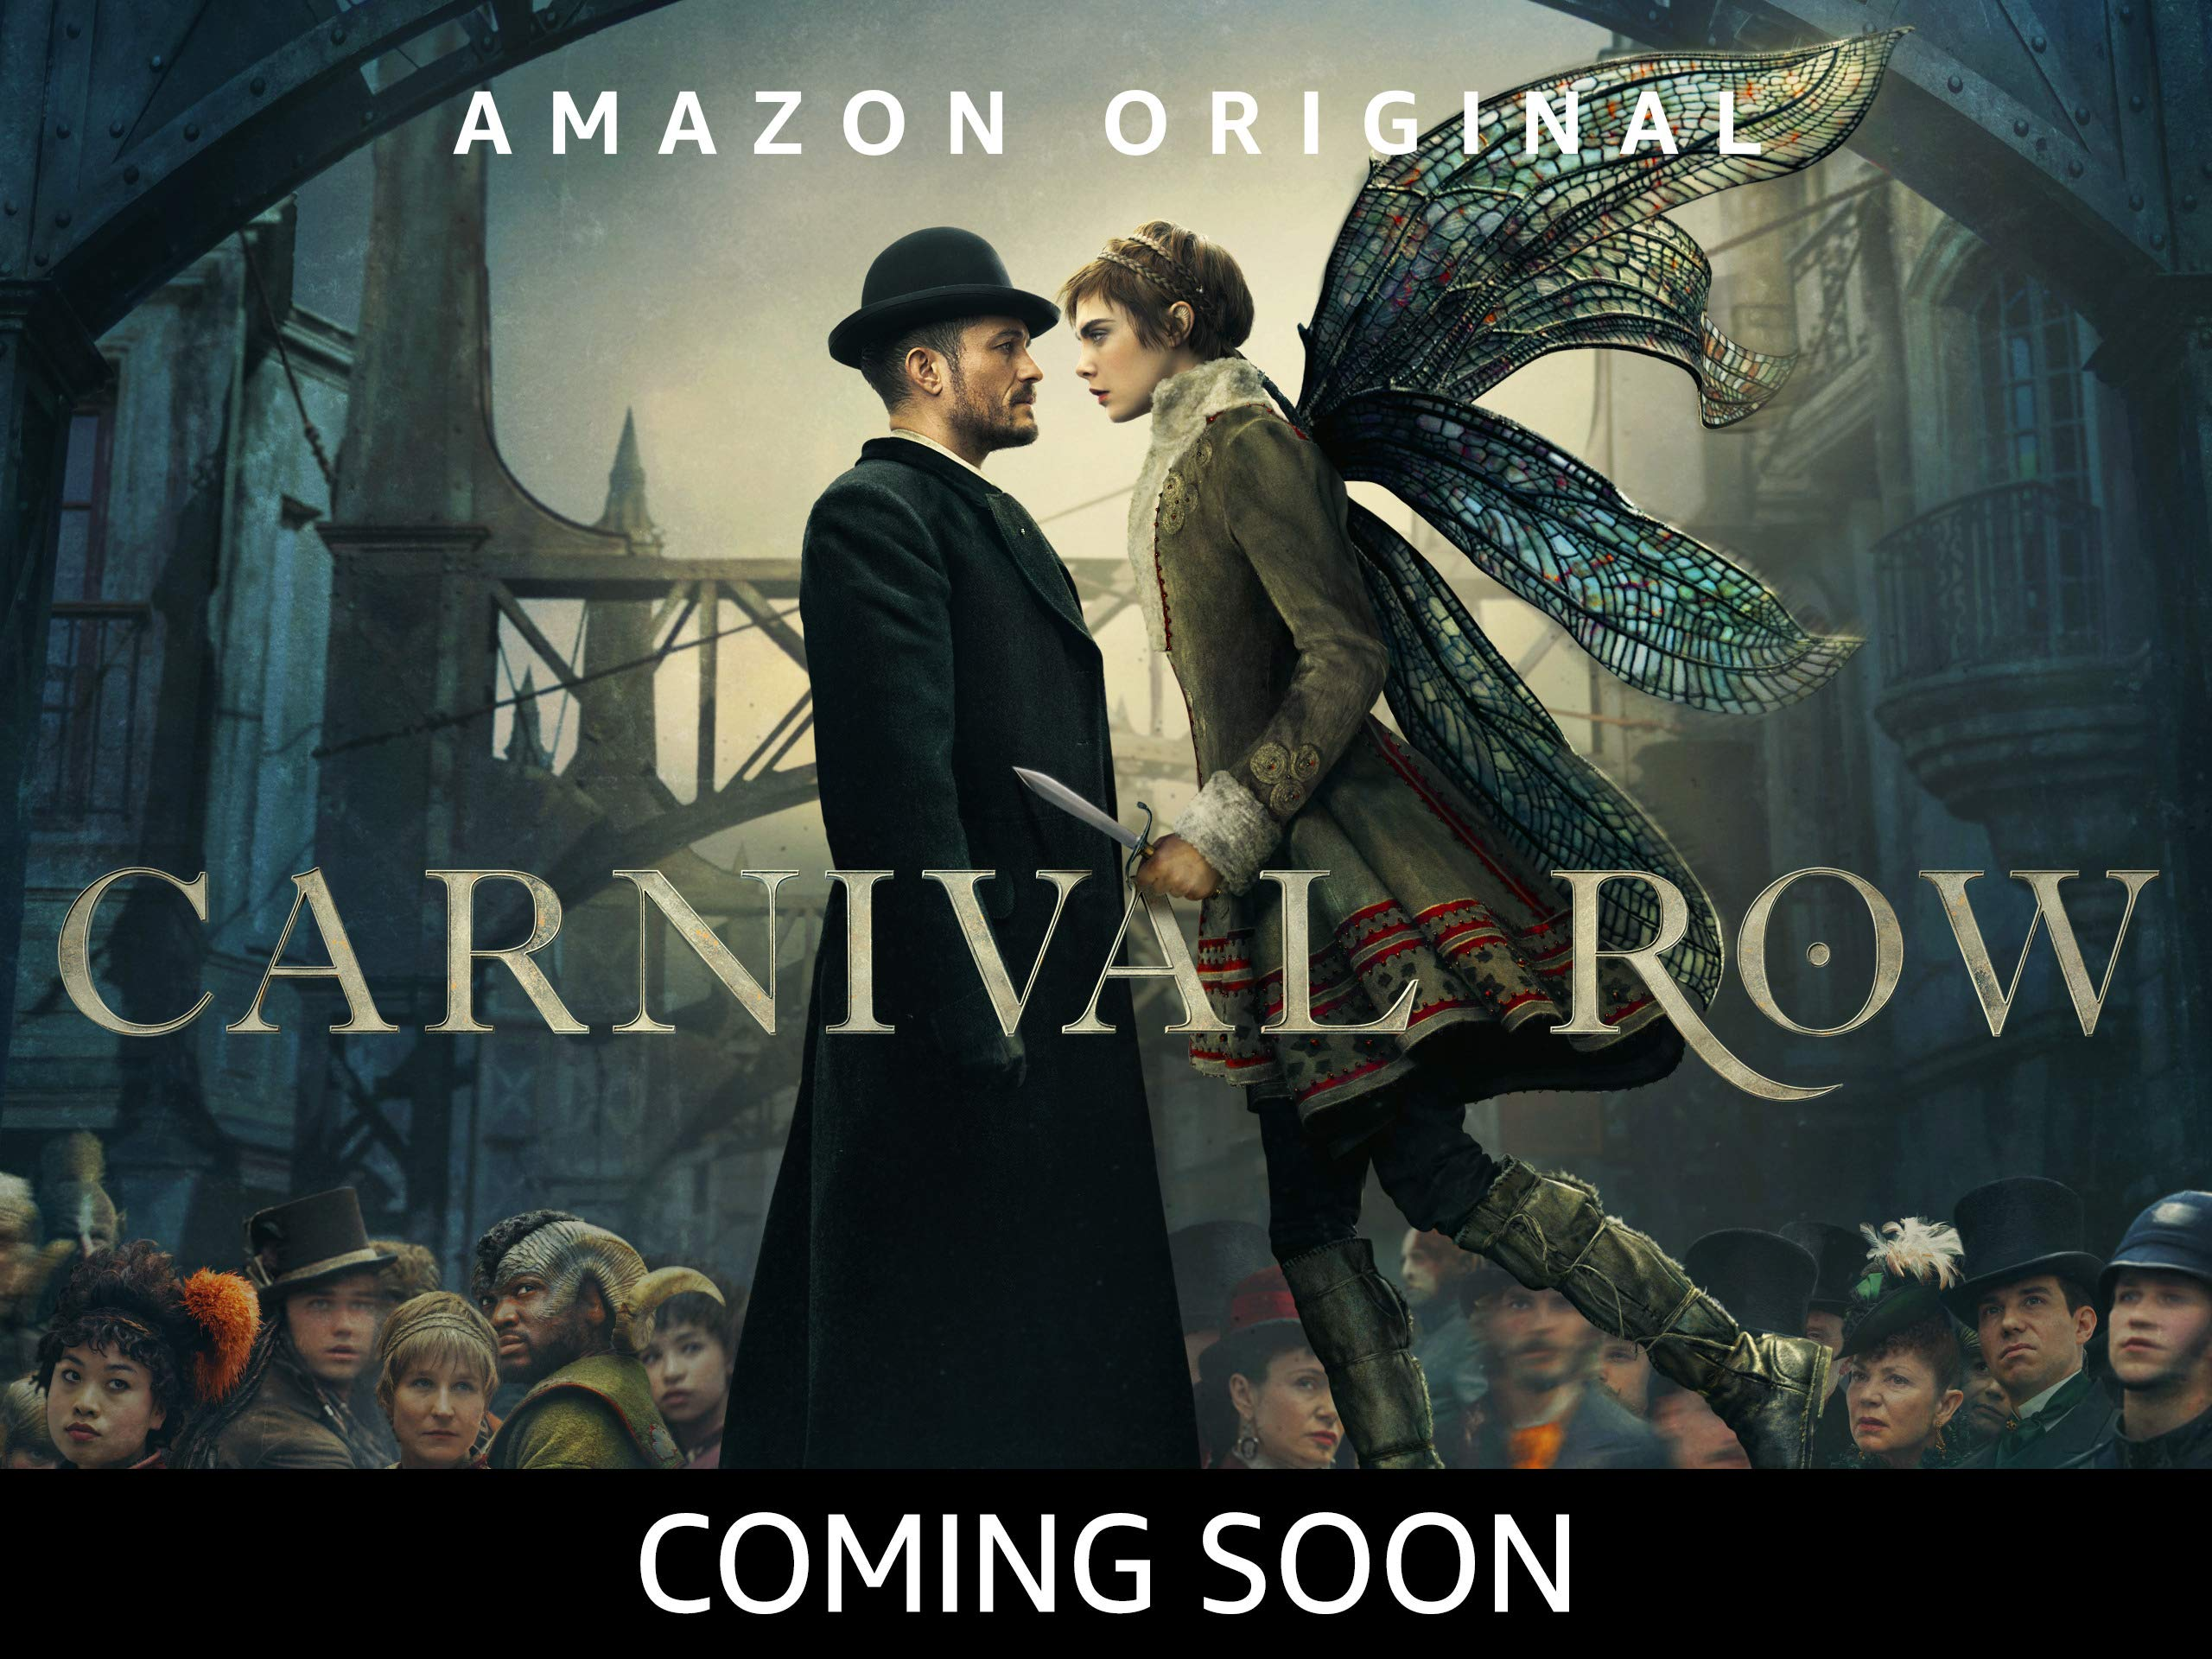 Carnival Row is coming soon to Prime